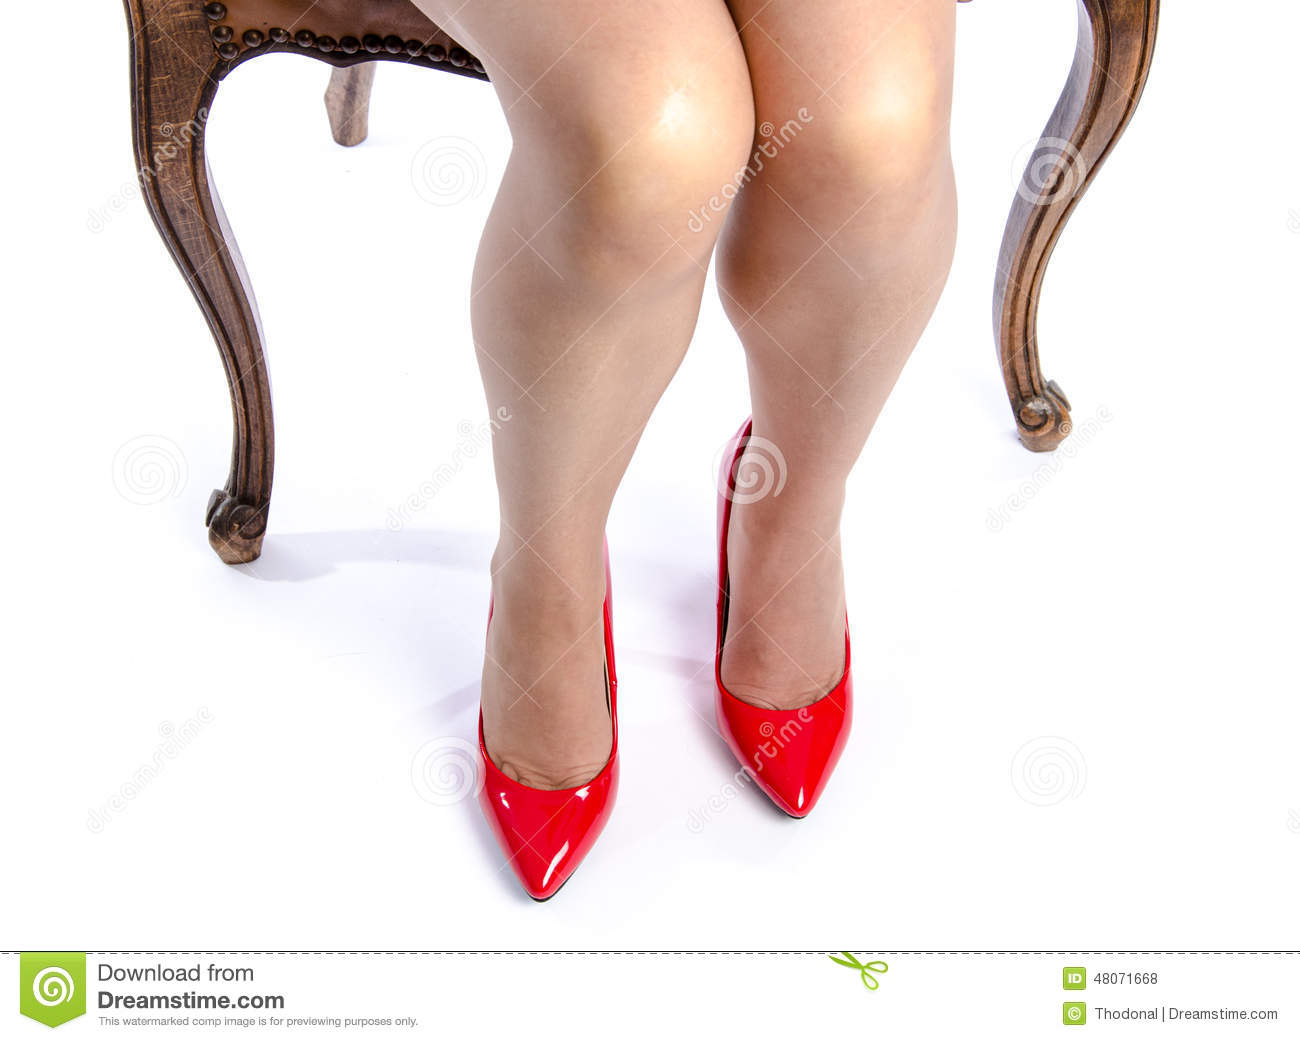 Woman Wearing Red High Heel Shoes Stock Photo - Image: 48071668